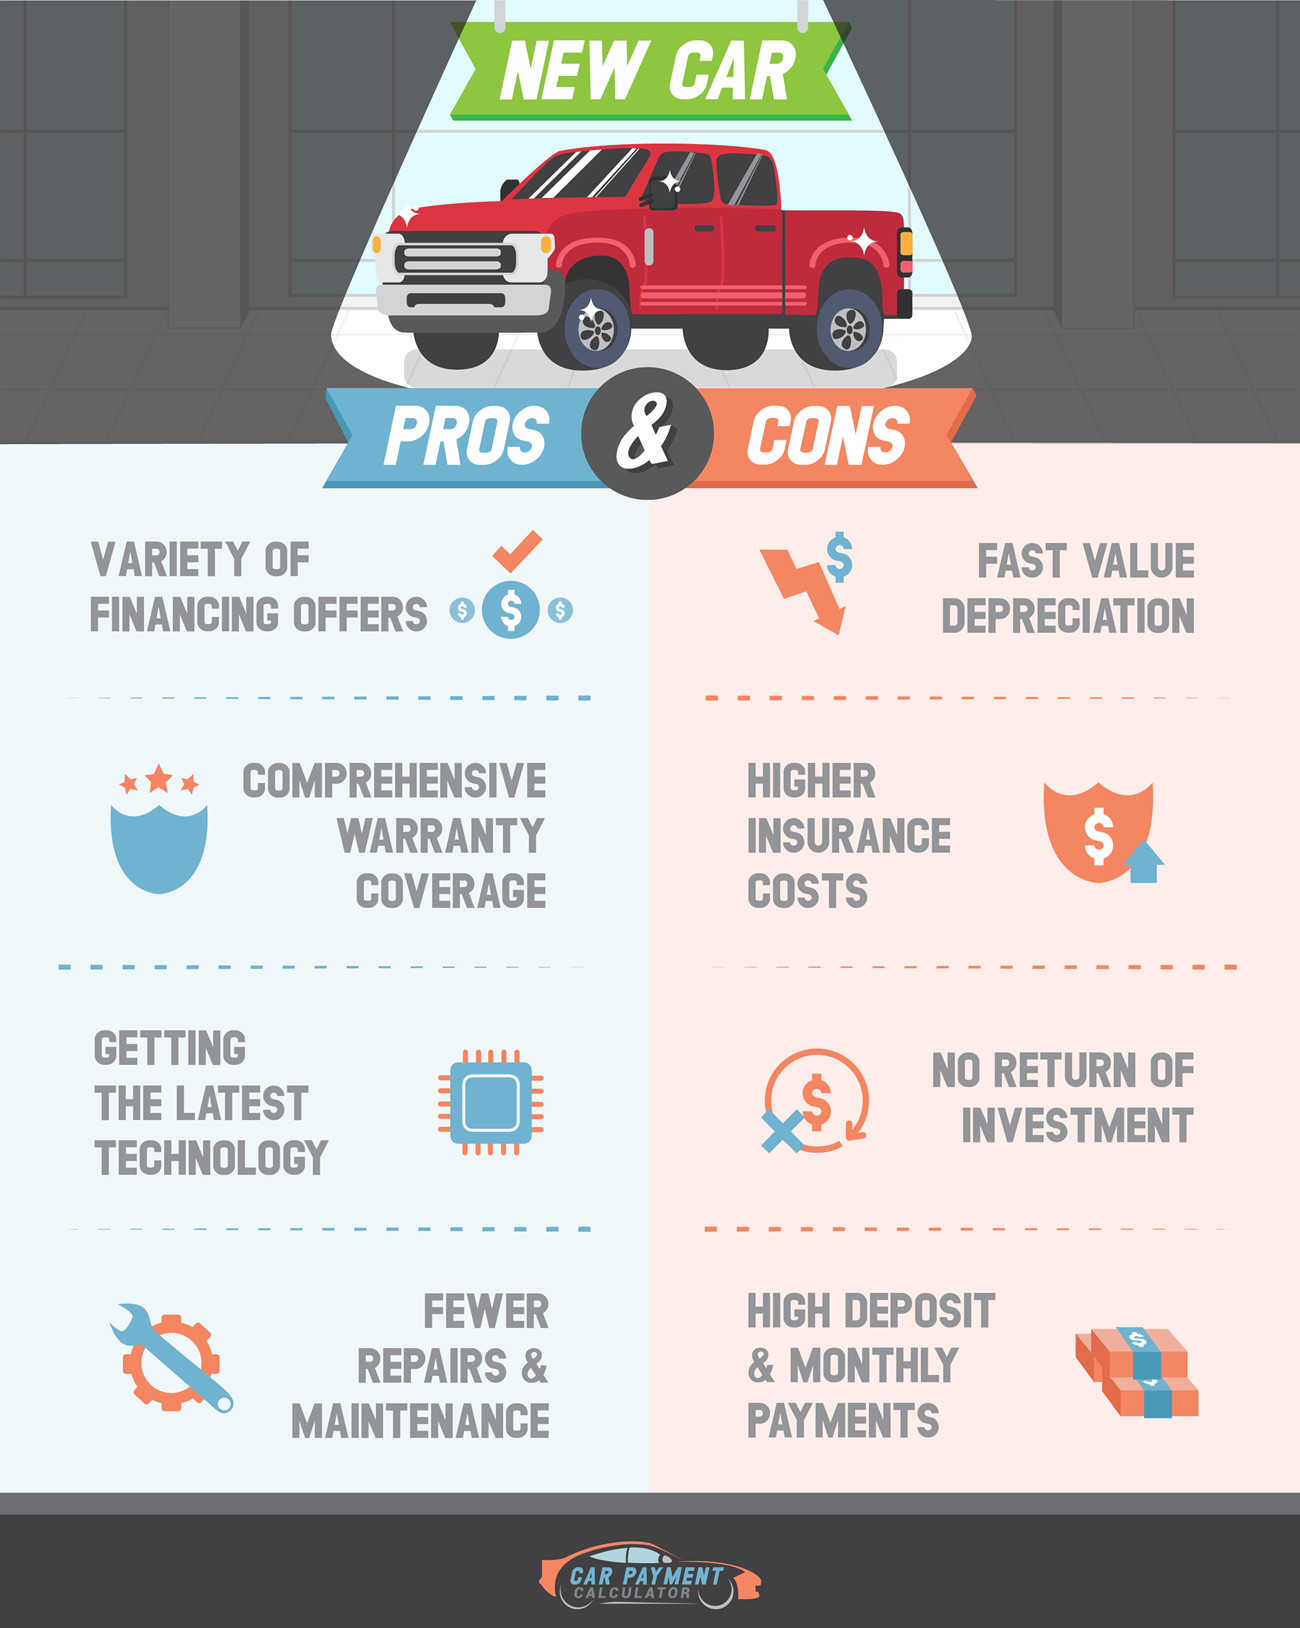 Pros and Cons of Buying a New Vehicle.